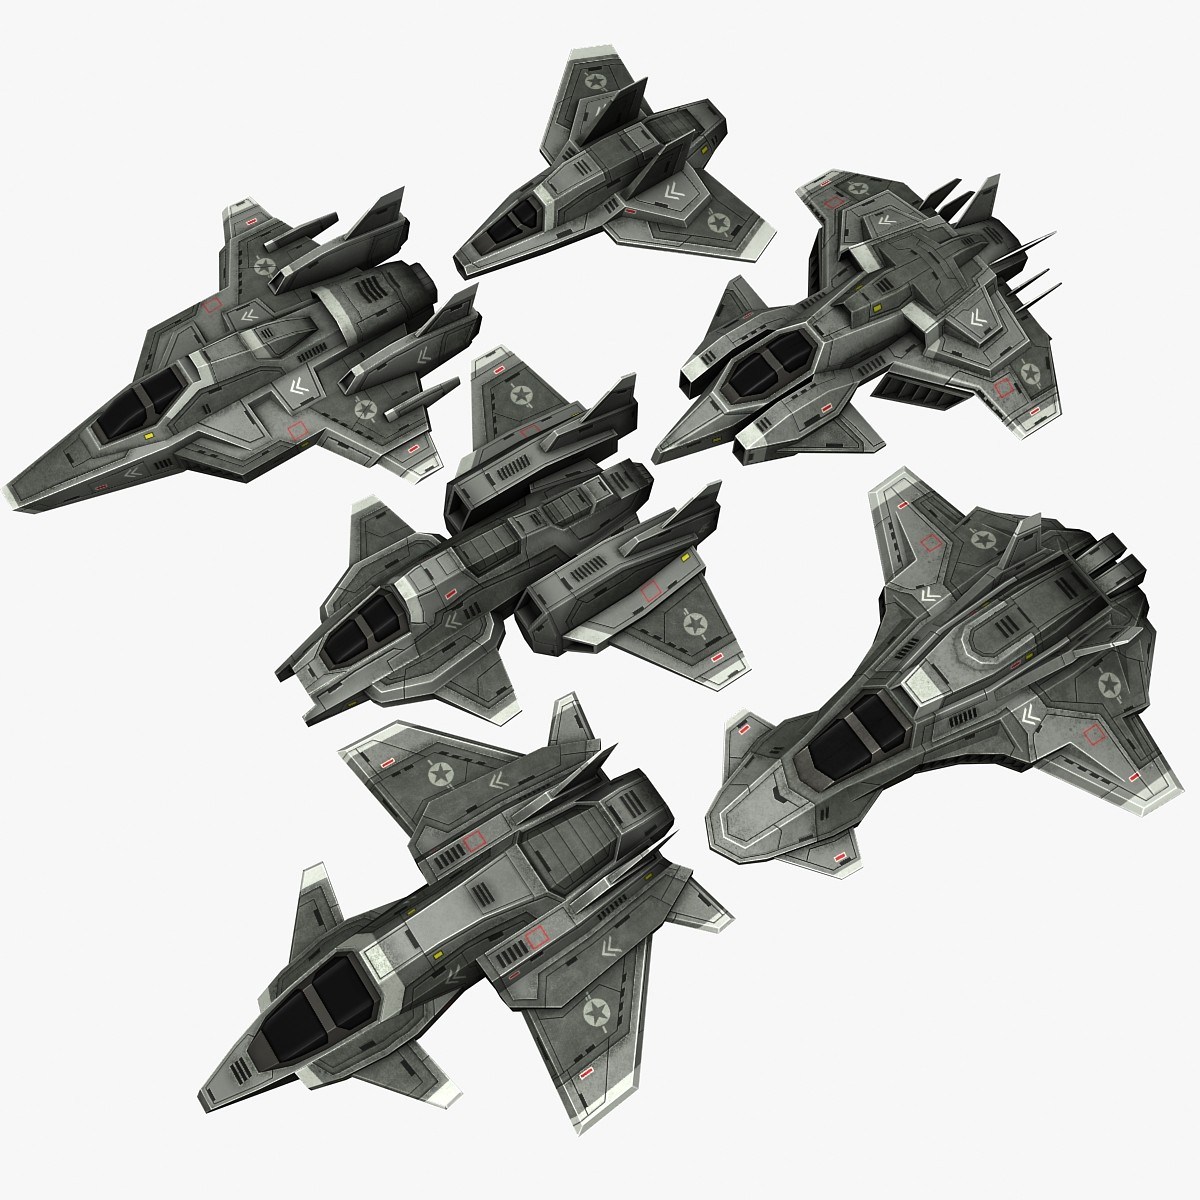 6_space_frigates_preview_0.jpg